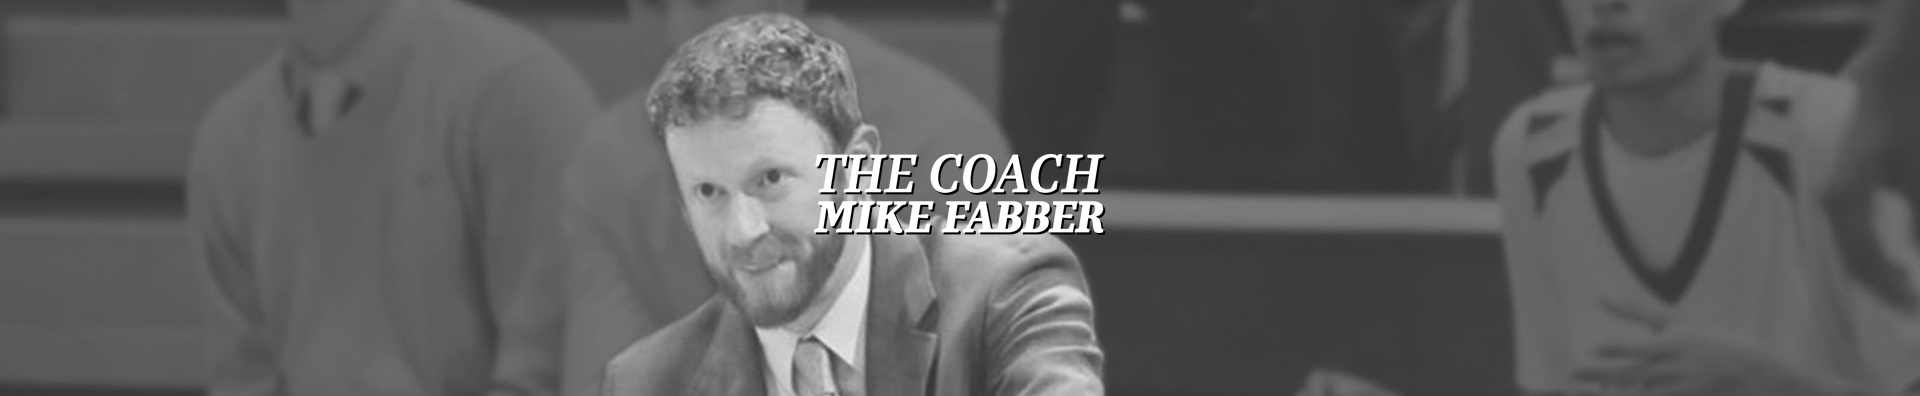 Coach Mike Fabber